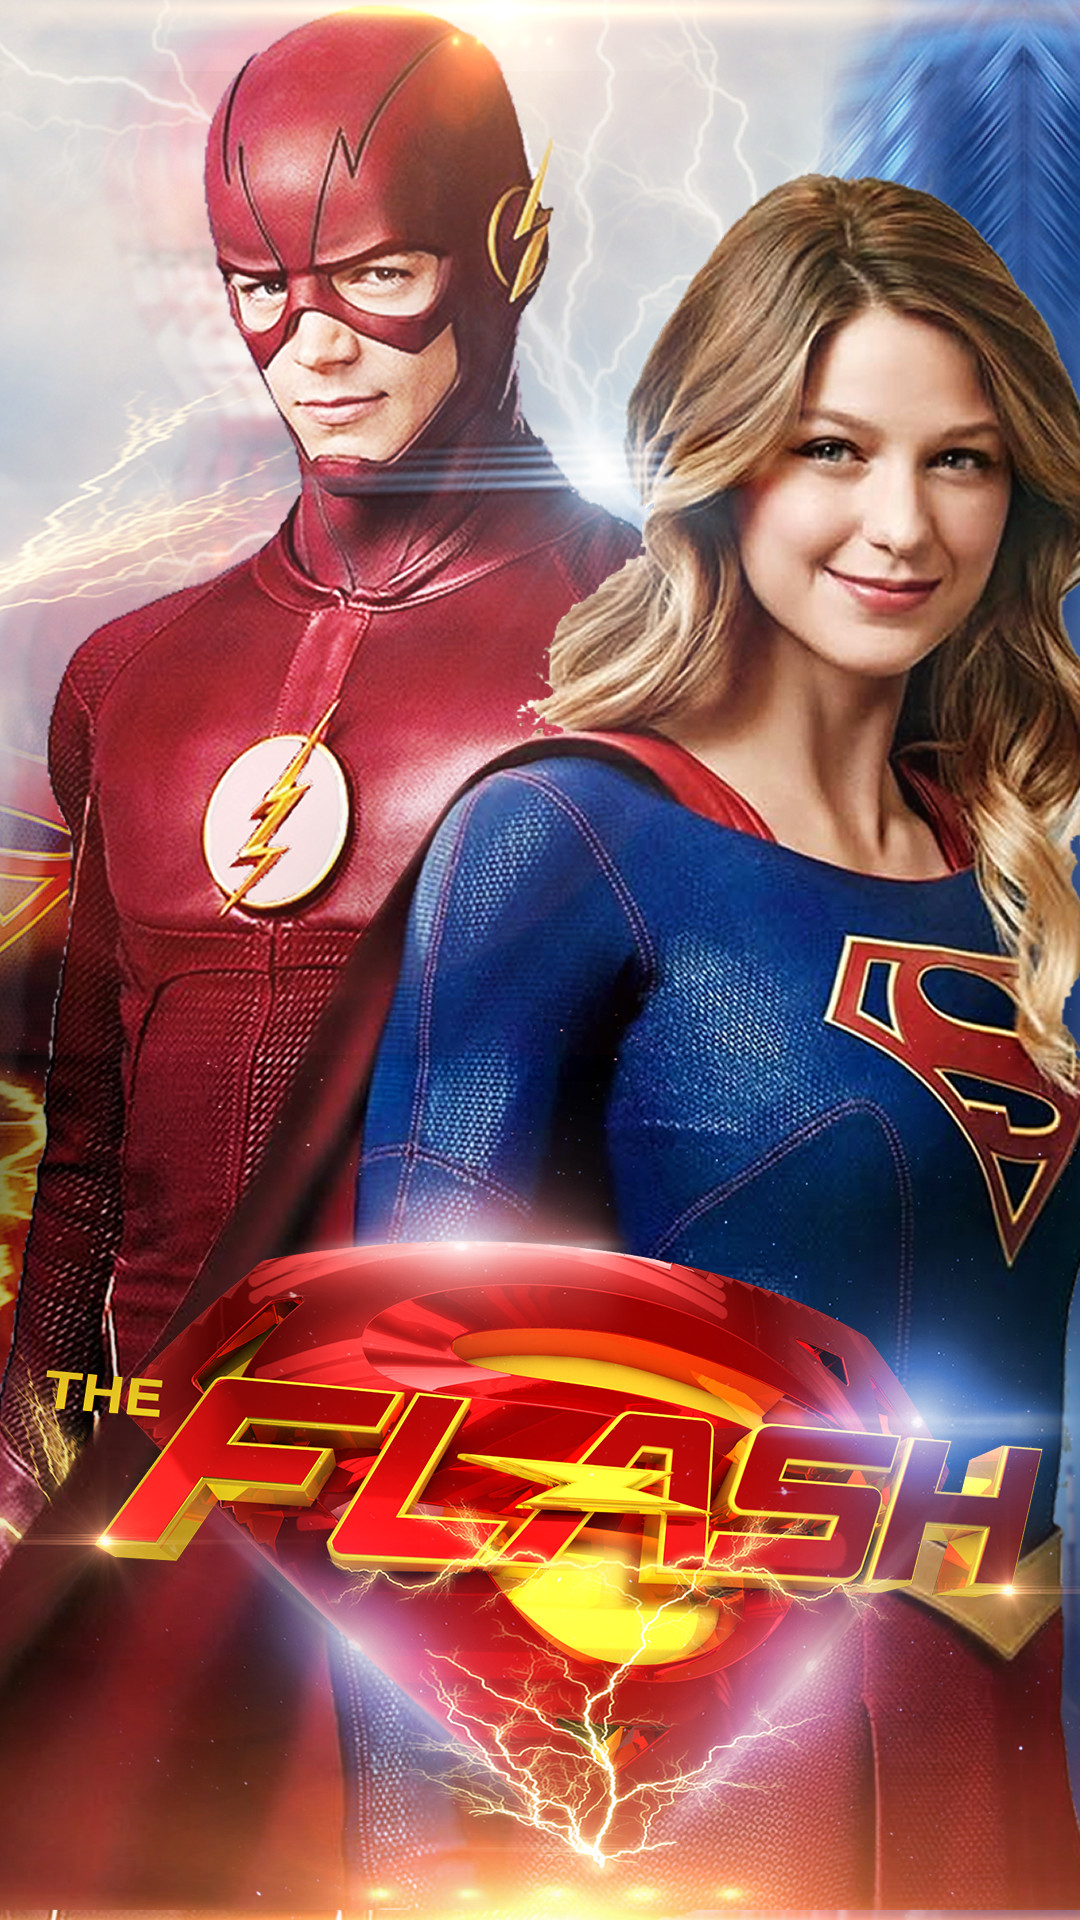 The Flash Hd Wallpapers for iPhone